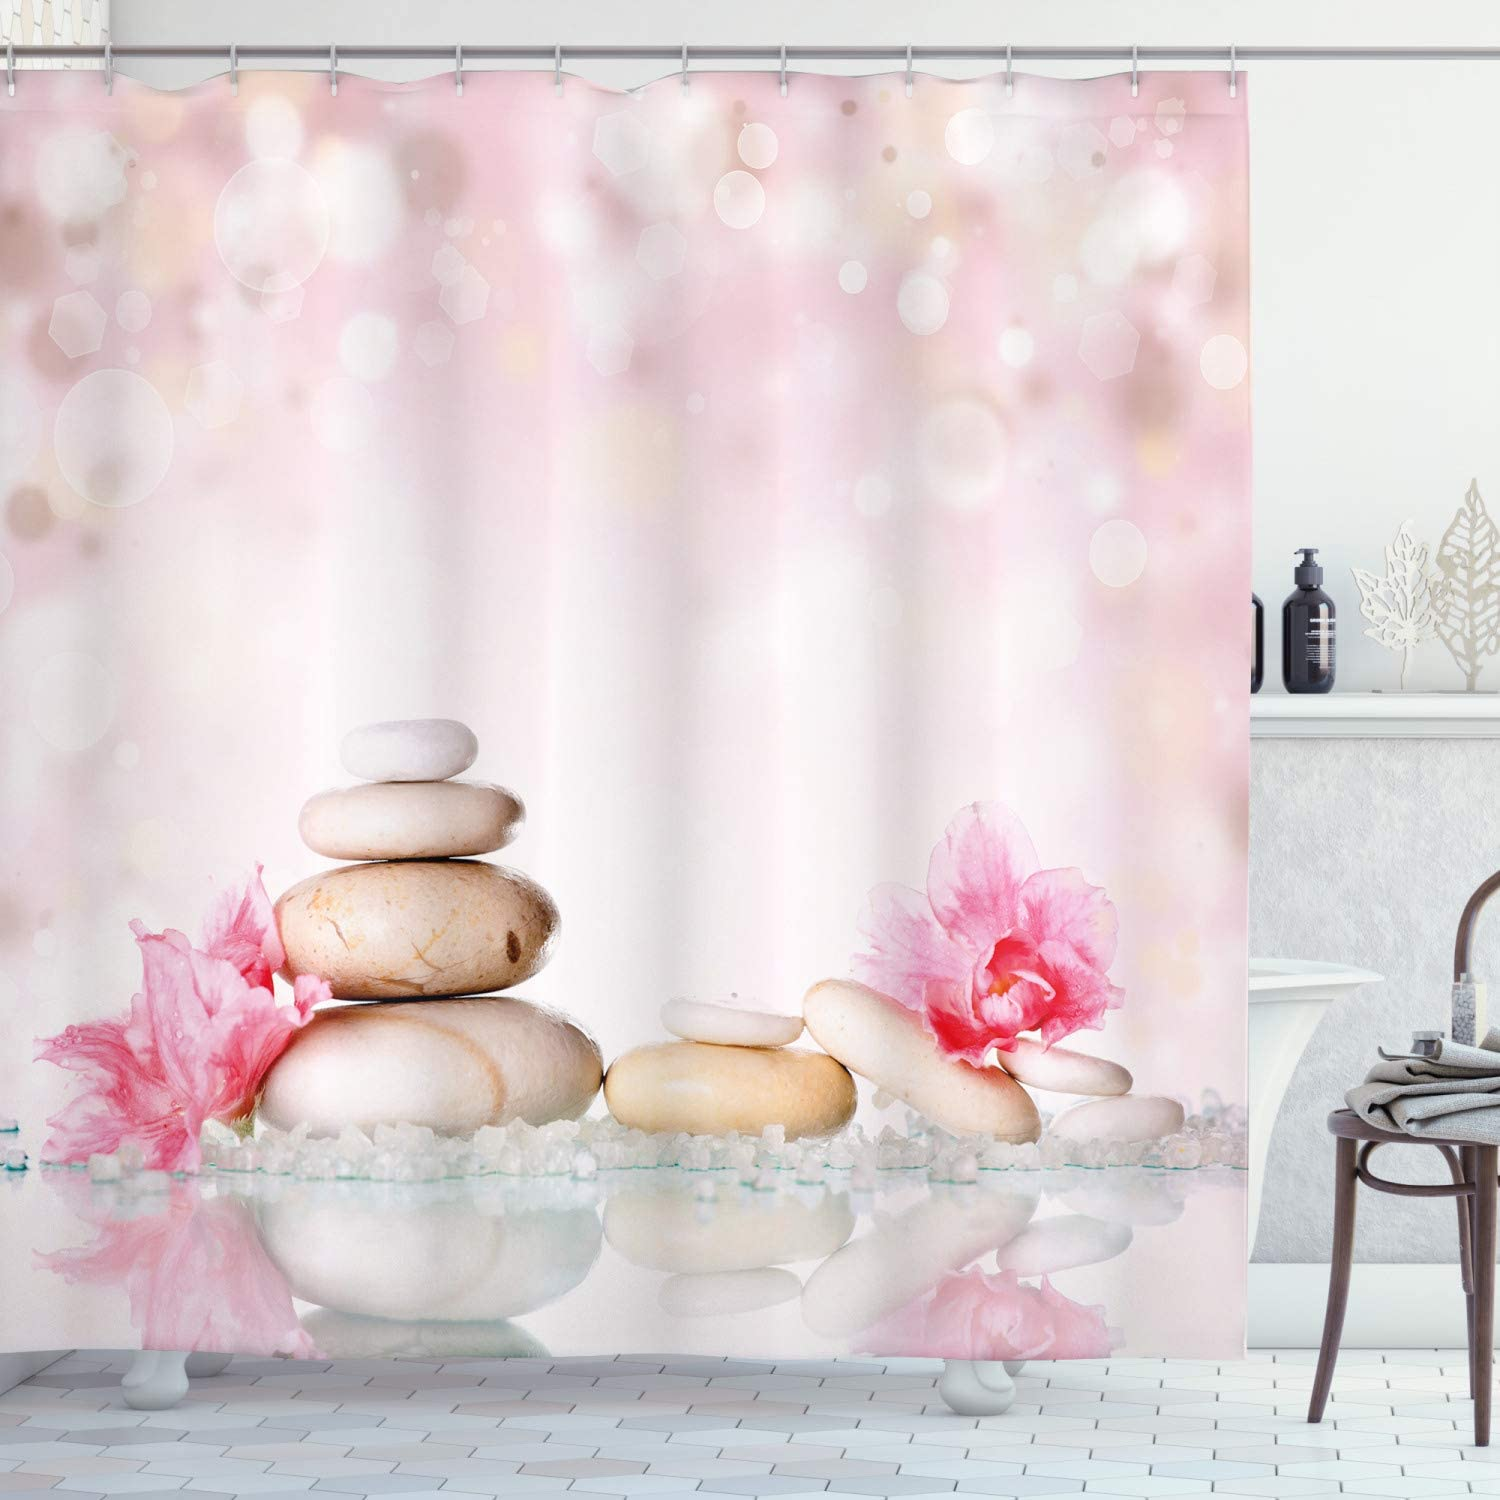 Ambesonne Spa Shower Curtain, Bohemian Zen Stones and Soft Petals Therapy Tradition Chakra Yoga Asian Picture, Fabric Bathroom Decor Set with Hooks, 75 Inches Long, Light Pink Peach